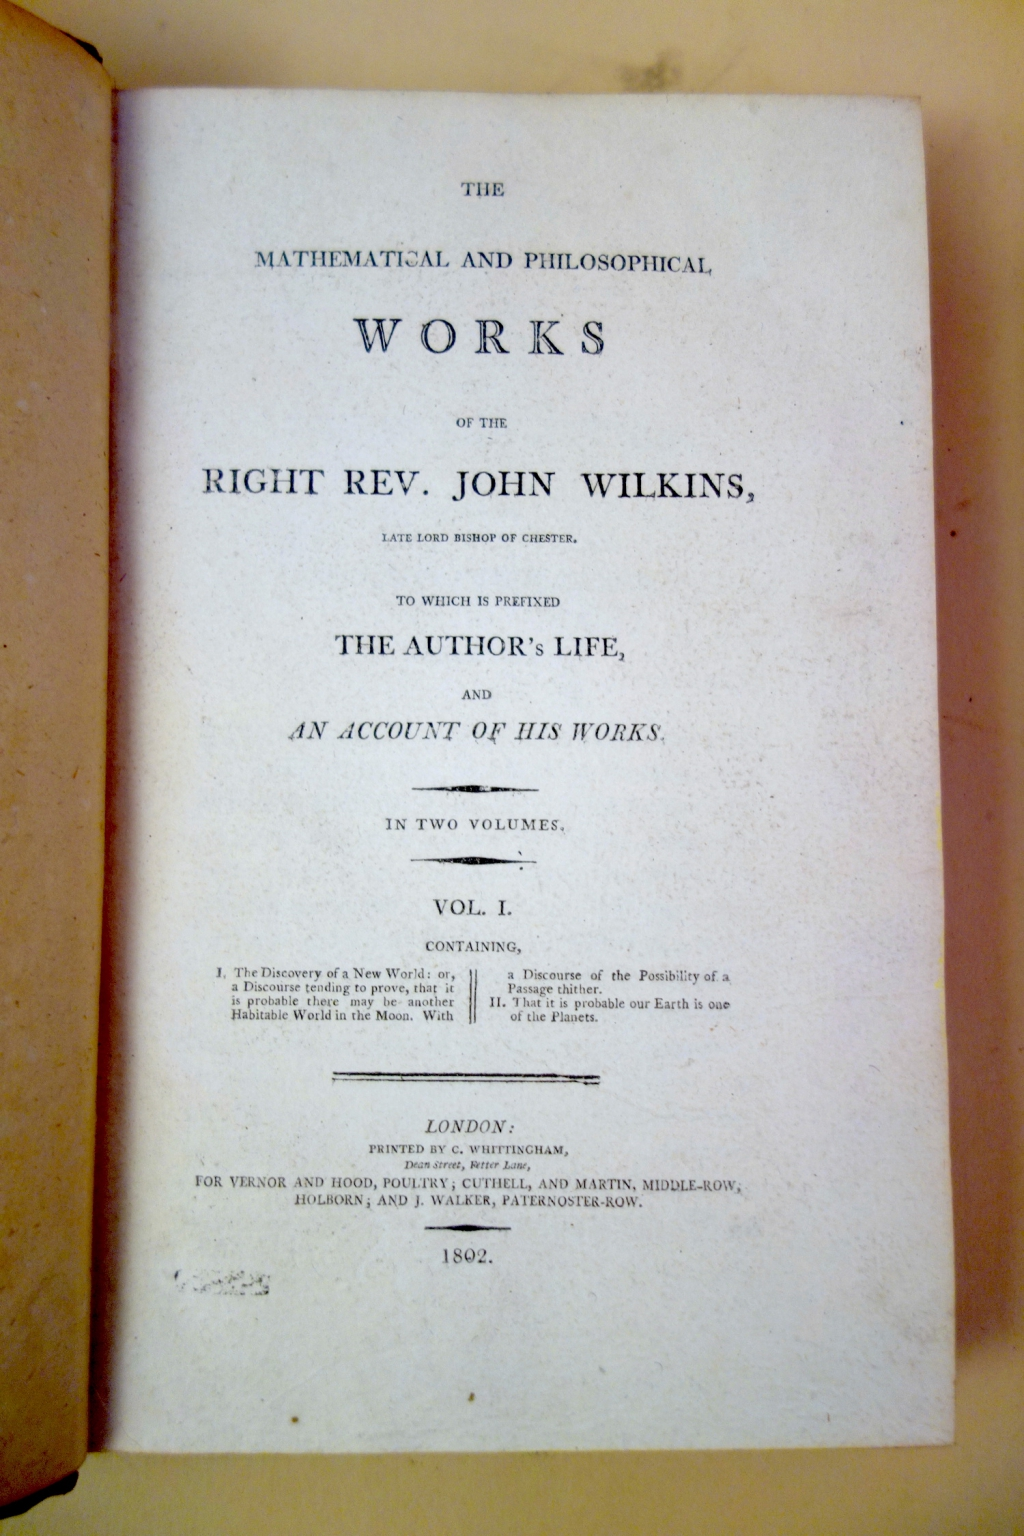 Title page of Wilkins works